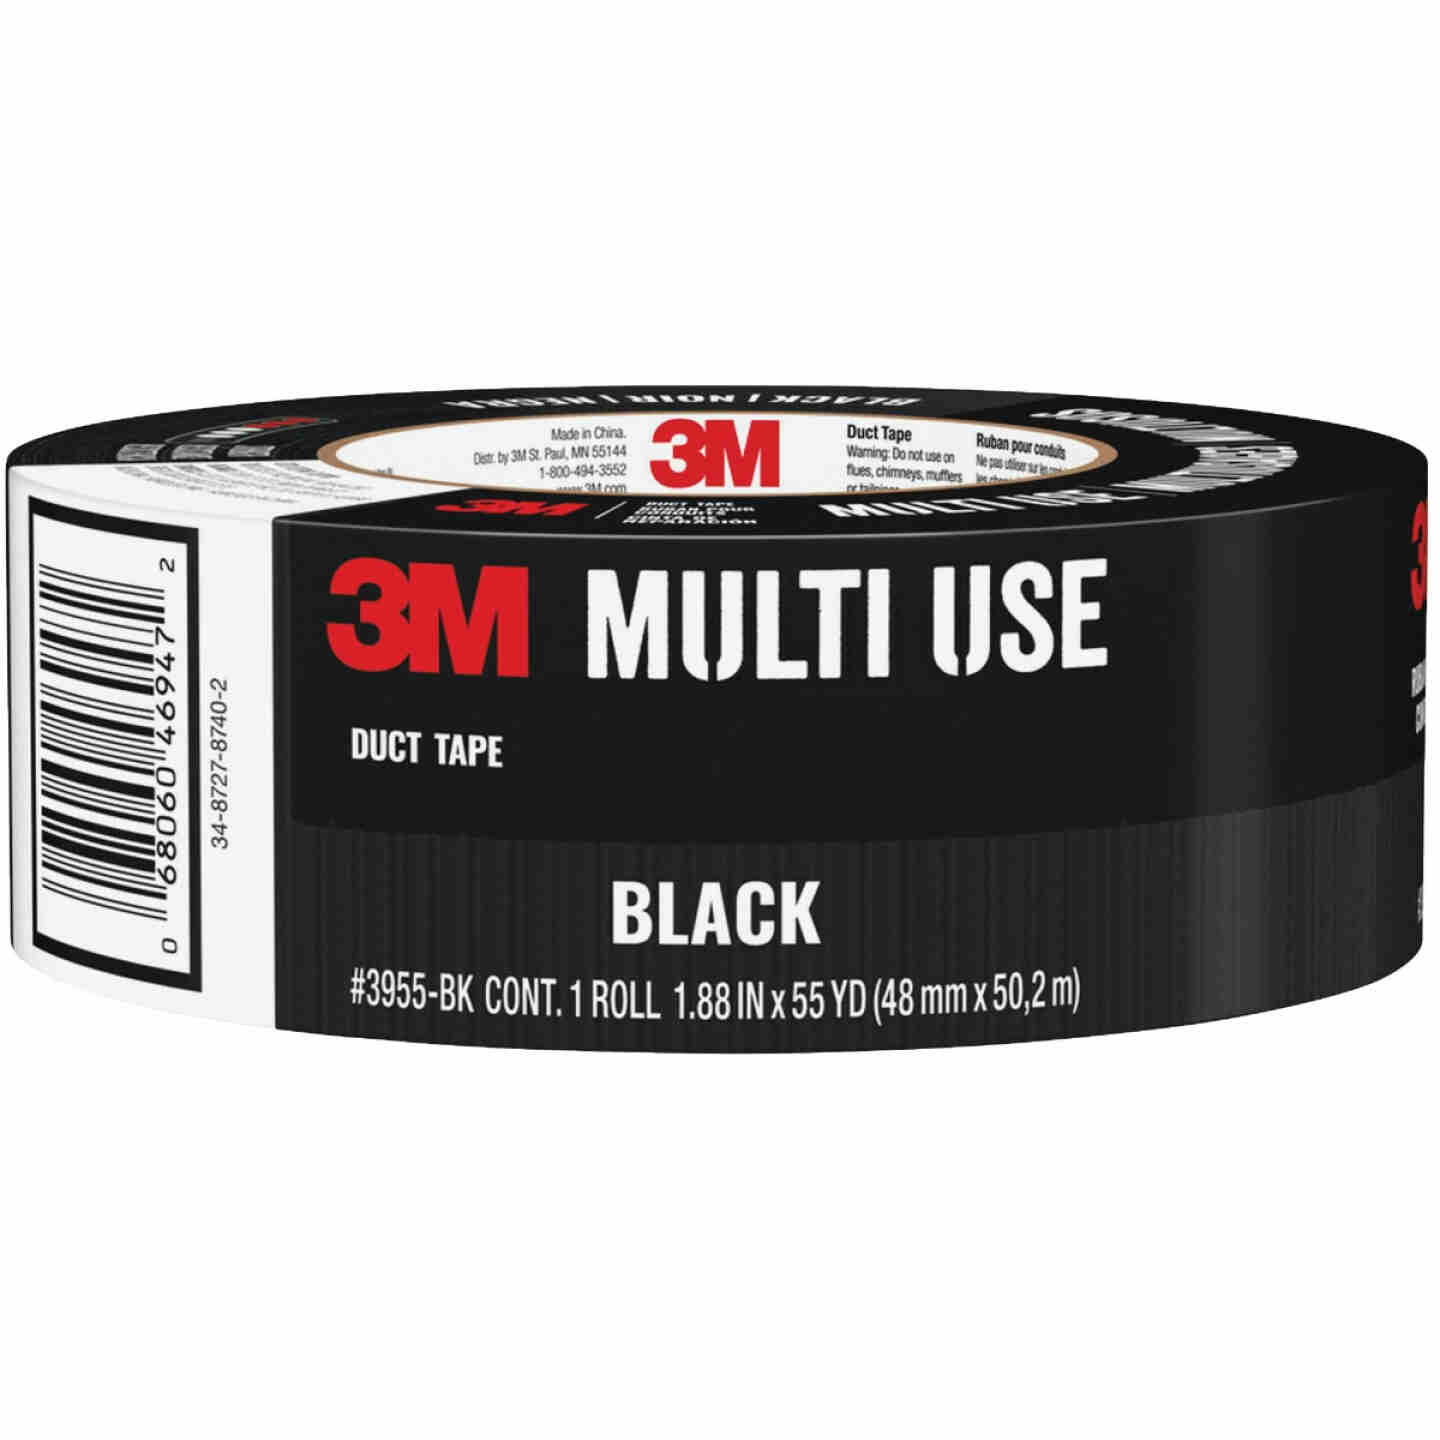 3M 1.88 In. x 60 Yd. Colored Duct Tape, Black Image 1